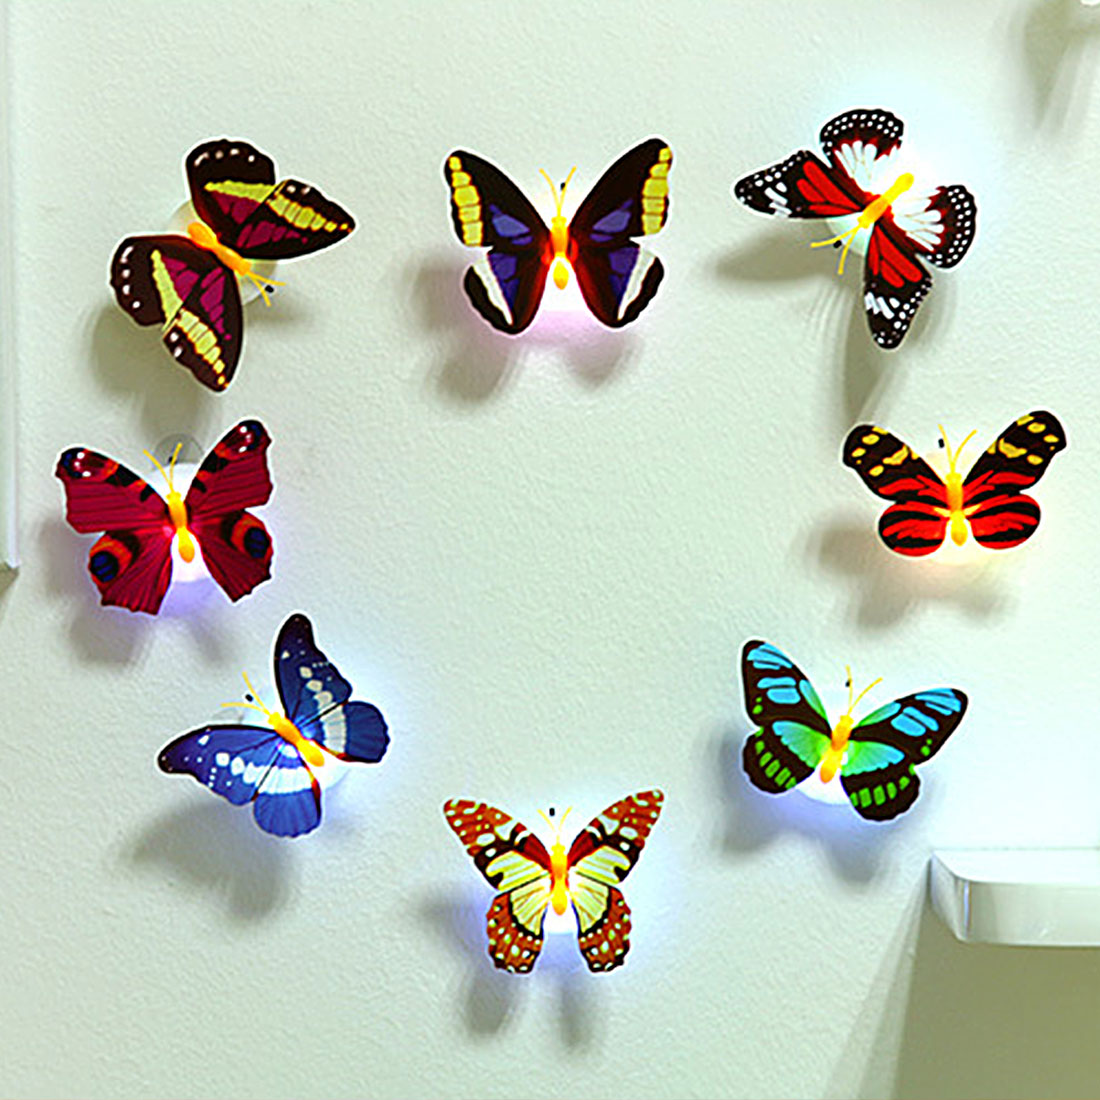 Hot Light Night Atmosphere Lamp with different Color Butterfly Indoor Light with Suction Pad Lighting Accessories/RandowcolorHot Light Night Atmosphere Lamp with different Color Butterfly Indoor Light with Suction Pad Lighting Accessories/Randowcolor